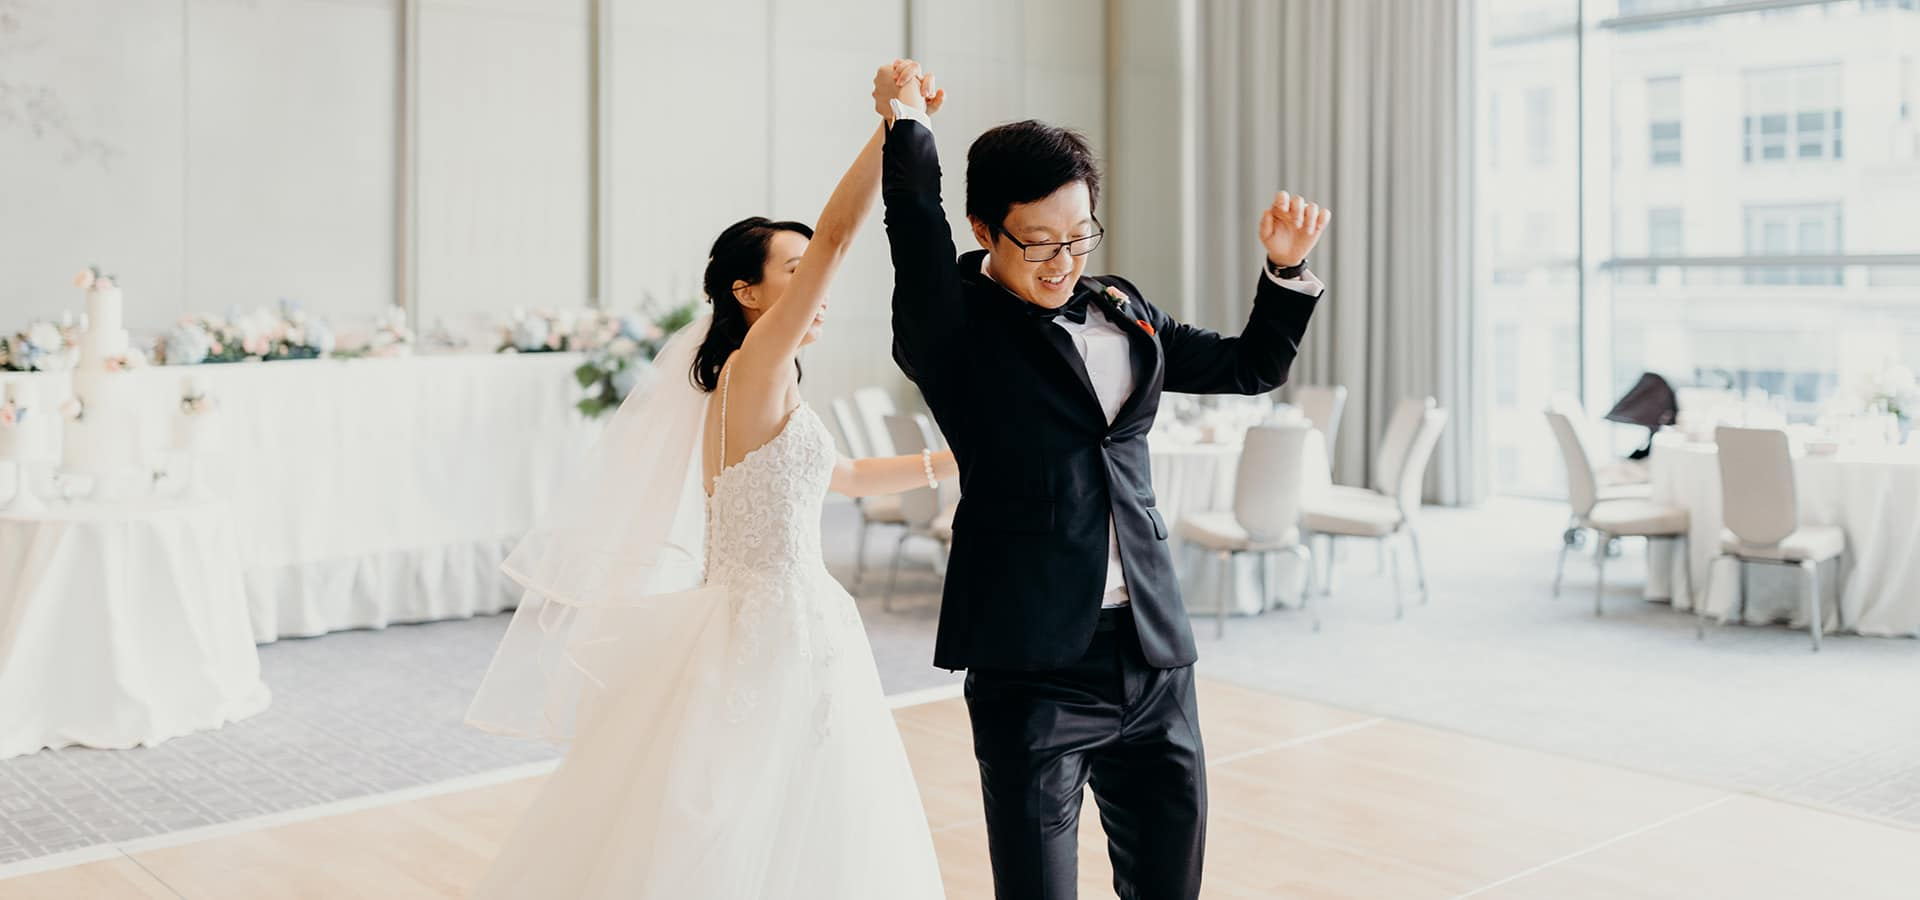 Hero image for Kam and Laurence's Sweet Wedding at the Four Seasons Hotel